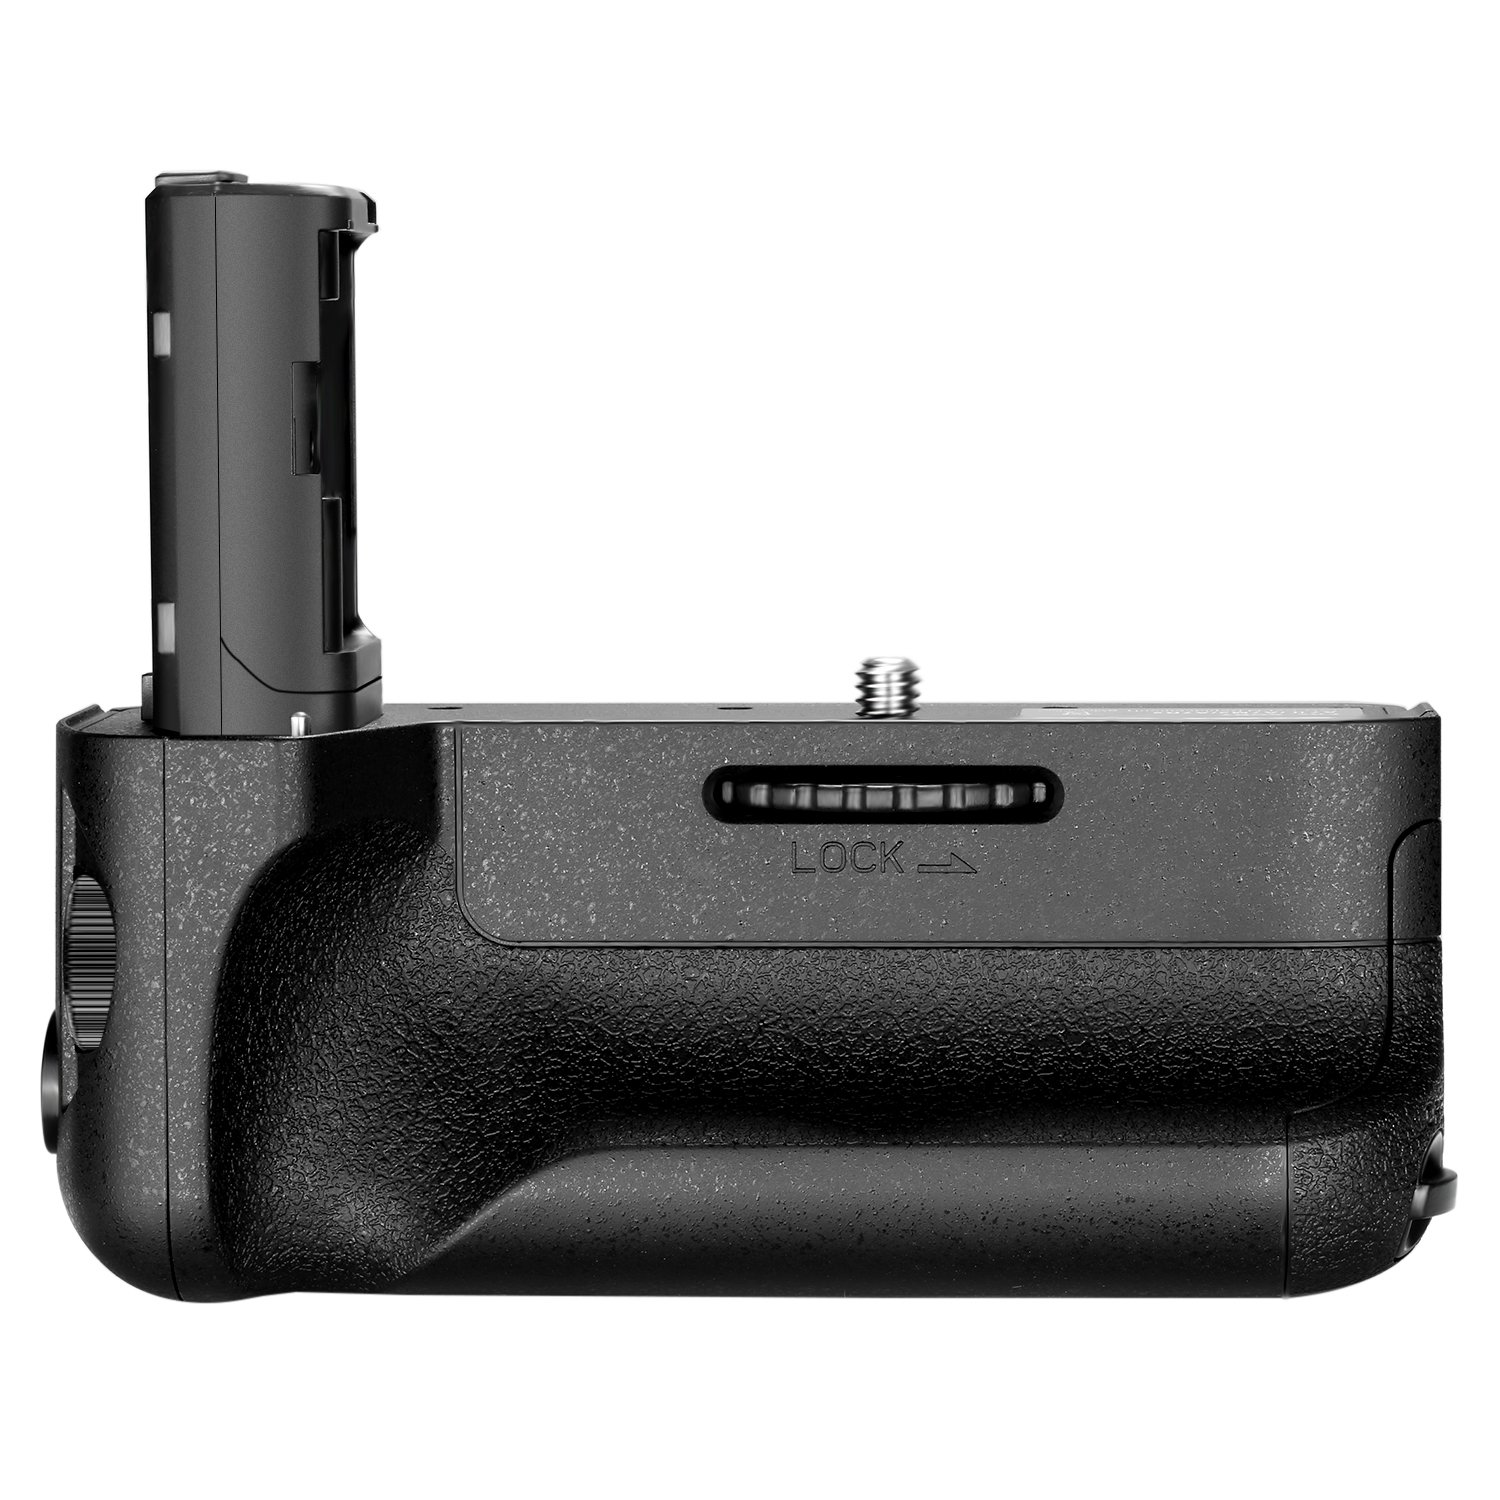 Neewer Vertical Battery Grip Replacement, Compatible with Sony VG-C2EM Works with NP-FW50 Battery for Sony A7 II A7S II and A7R II Cameras (Battery NOT Included) by Neewer